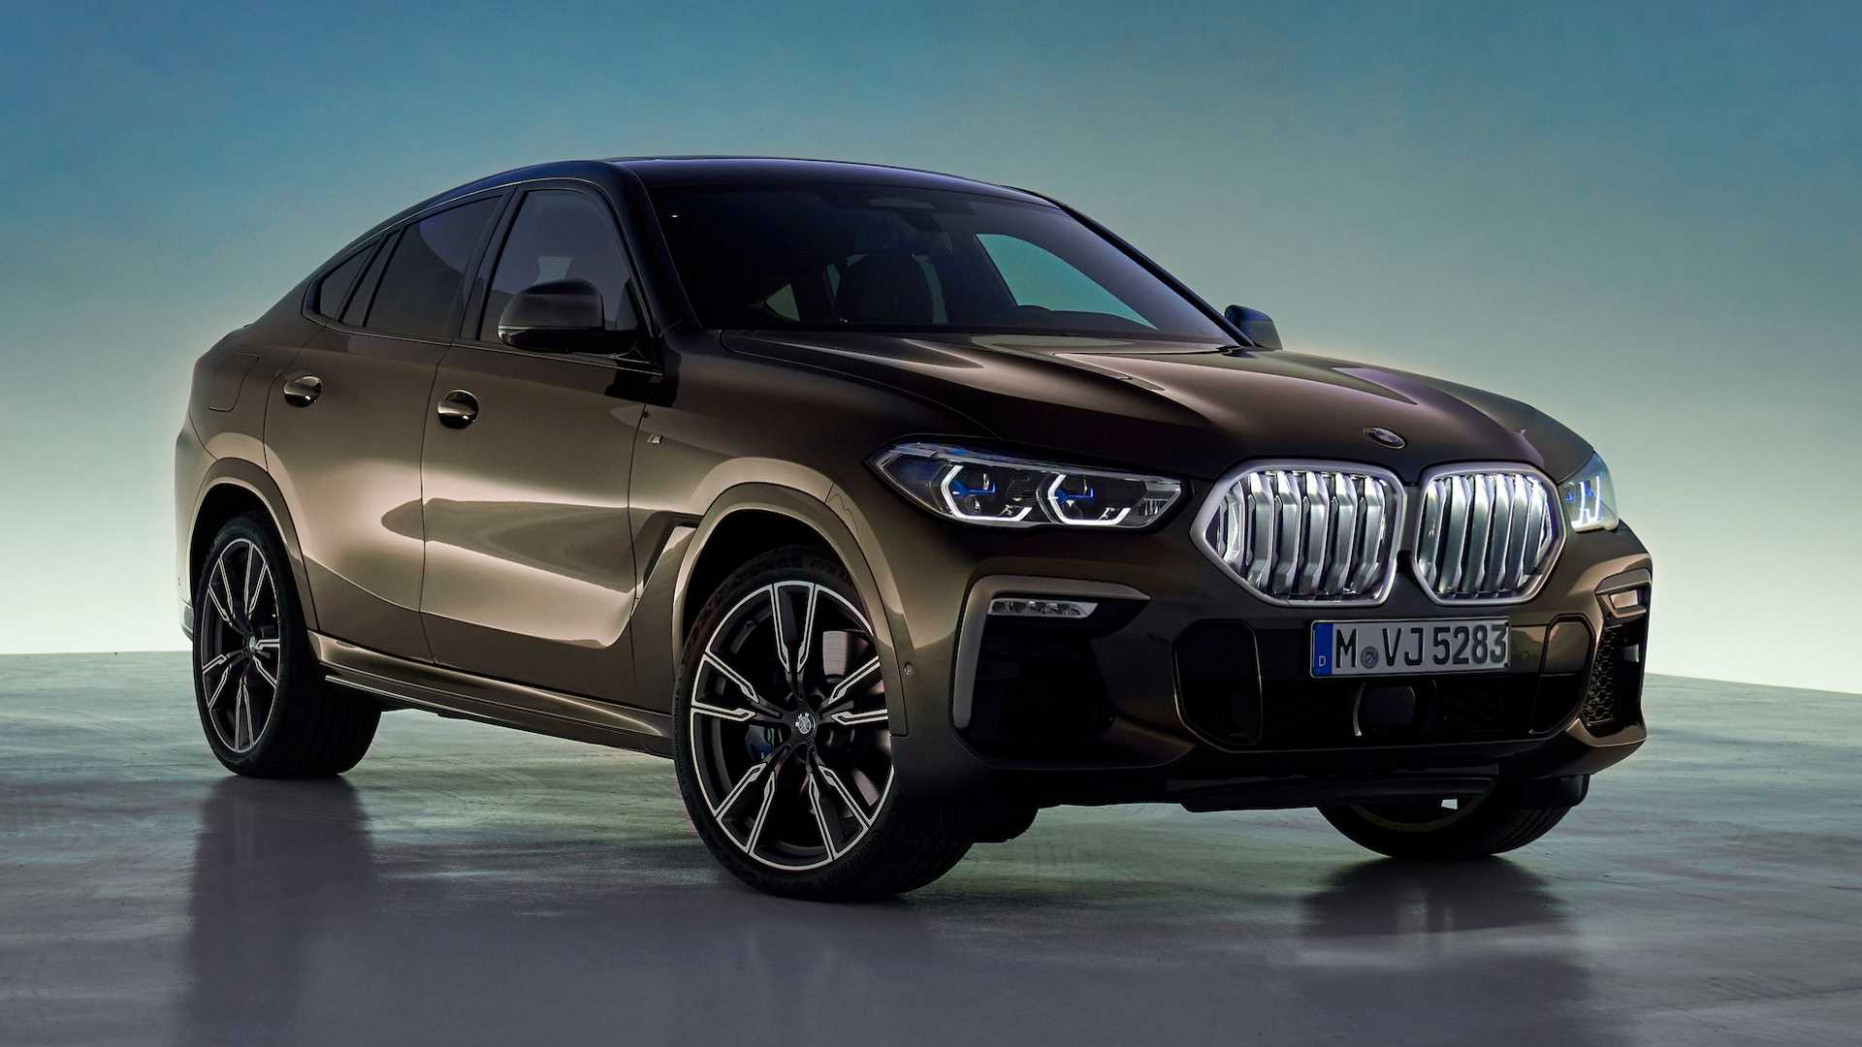 8 BMW X8 debuts with 8-bhp twin-turbo V8, light-up grille - bmw fiyat listesi 2020